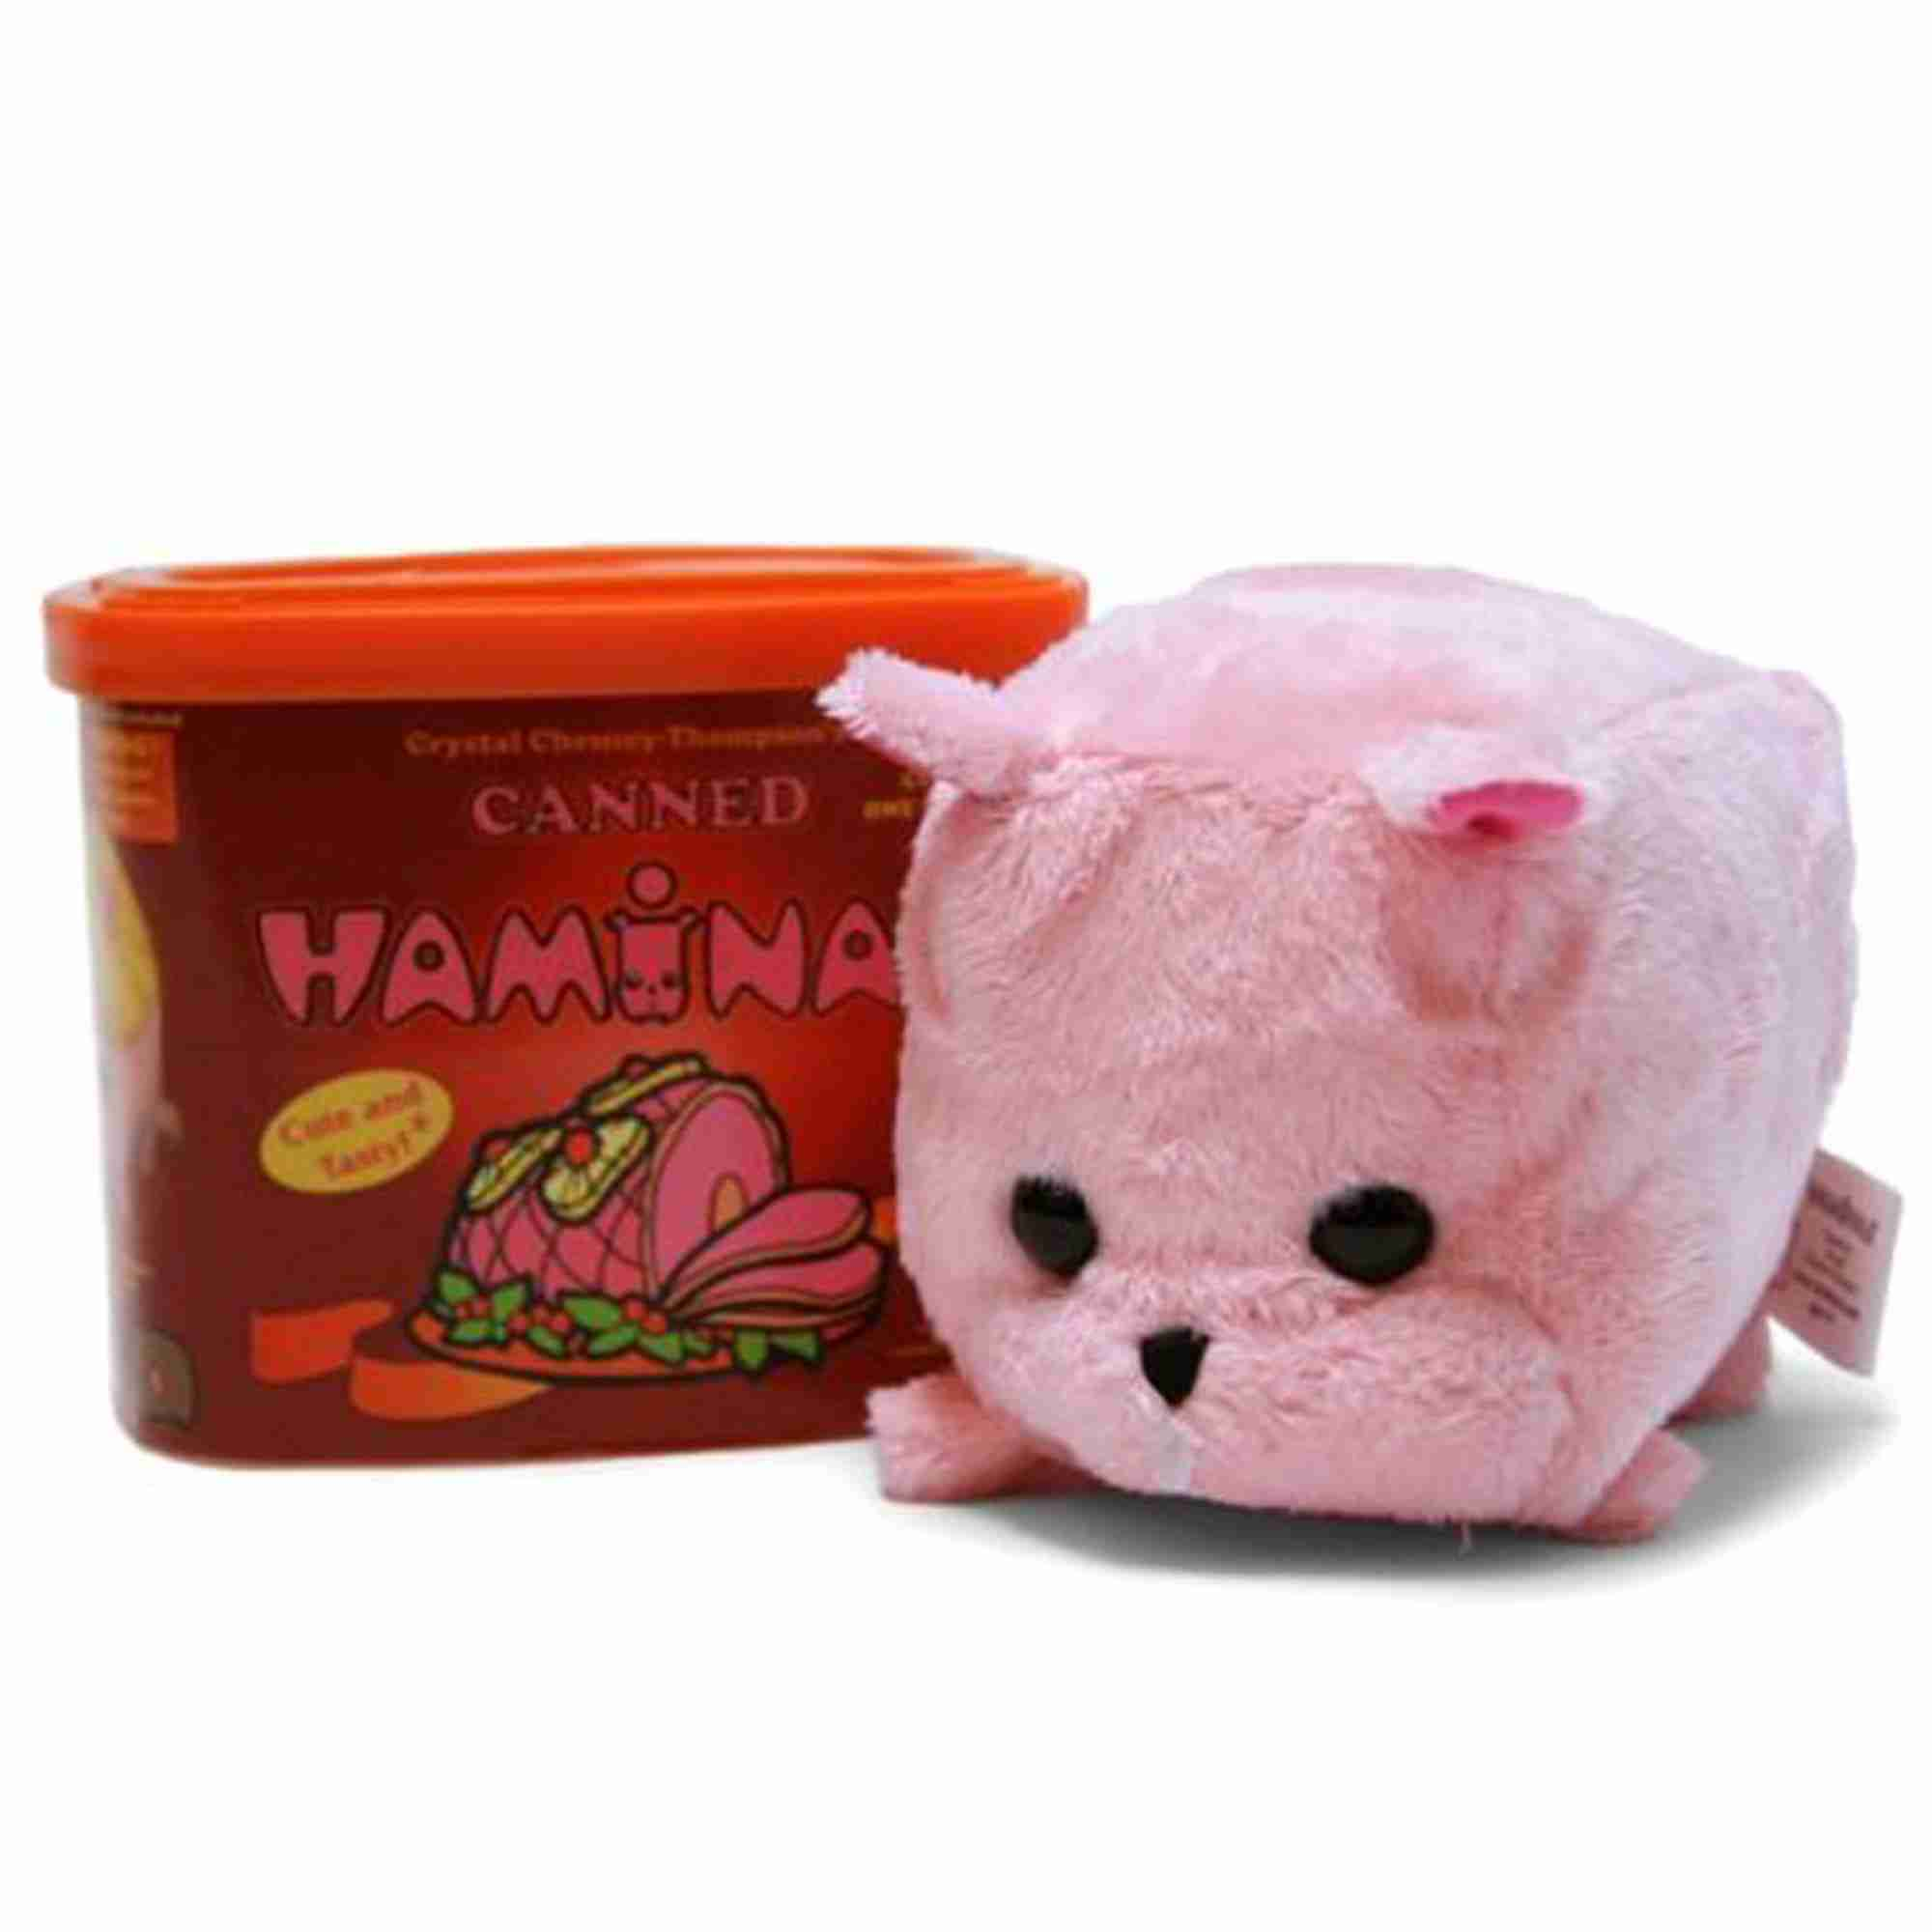 Canned Haminal - Boneless and Canned Plush